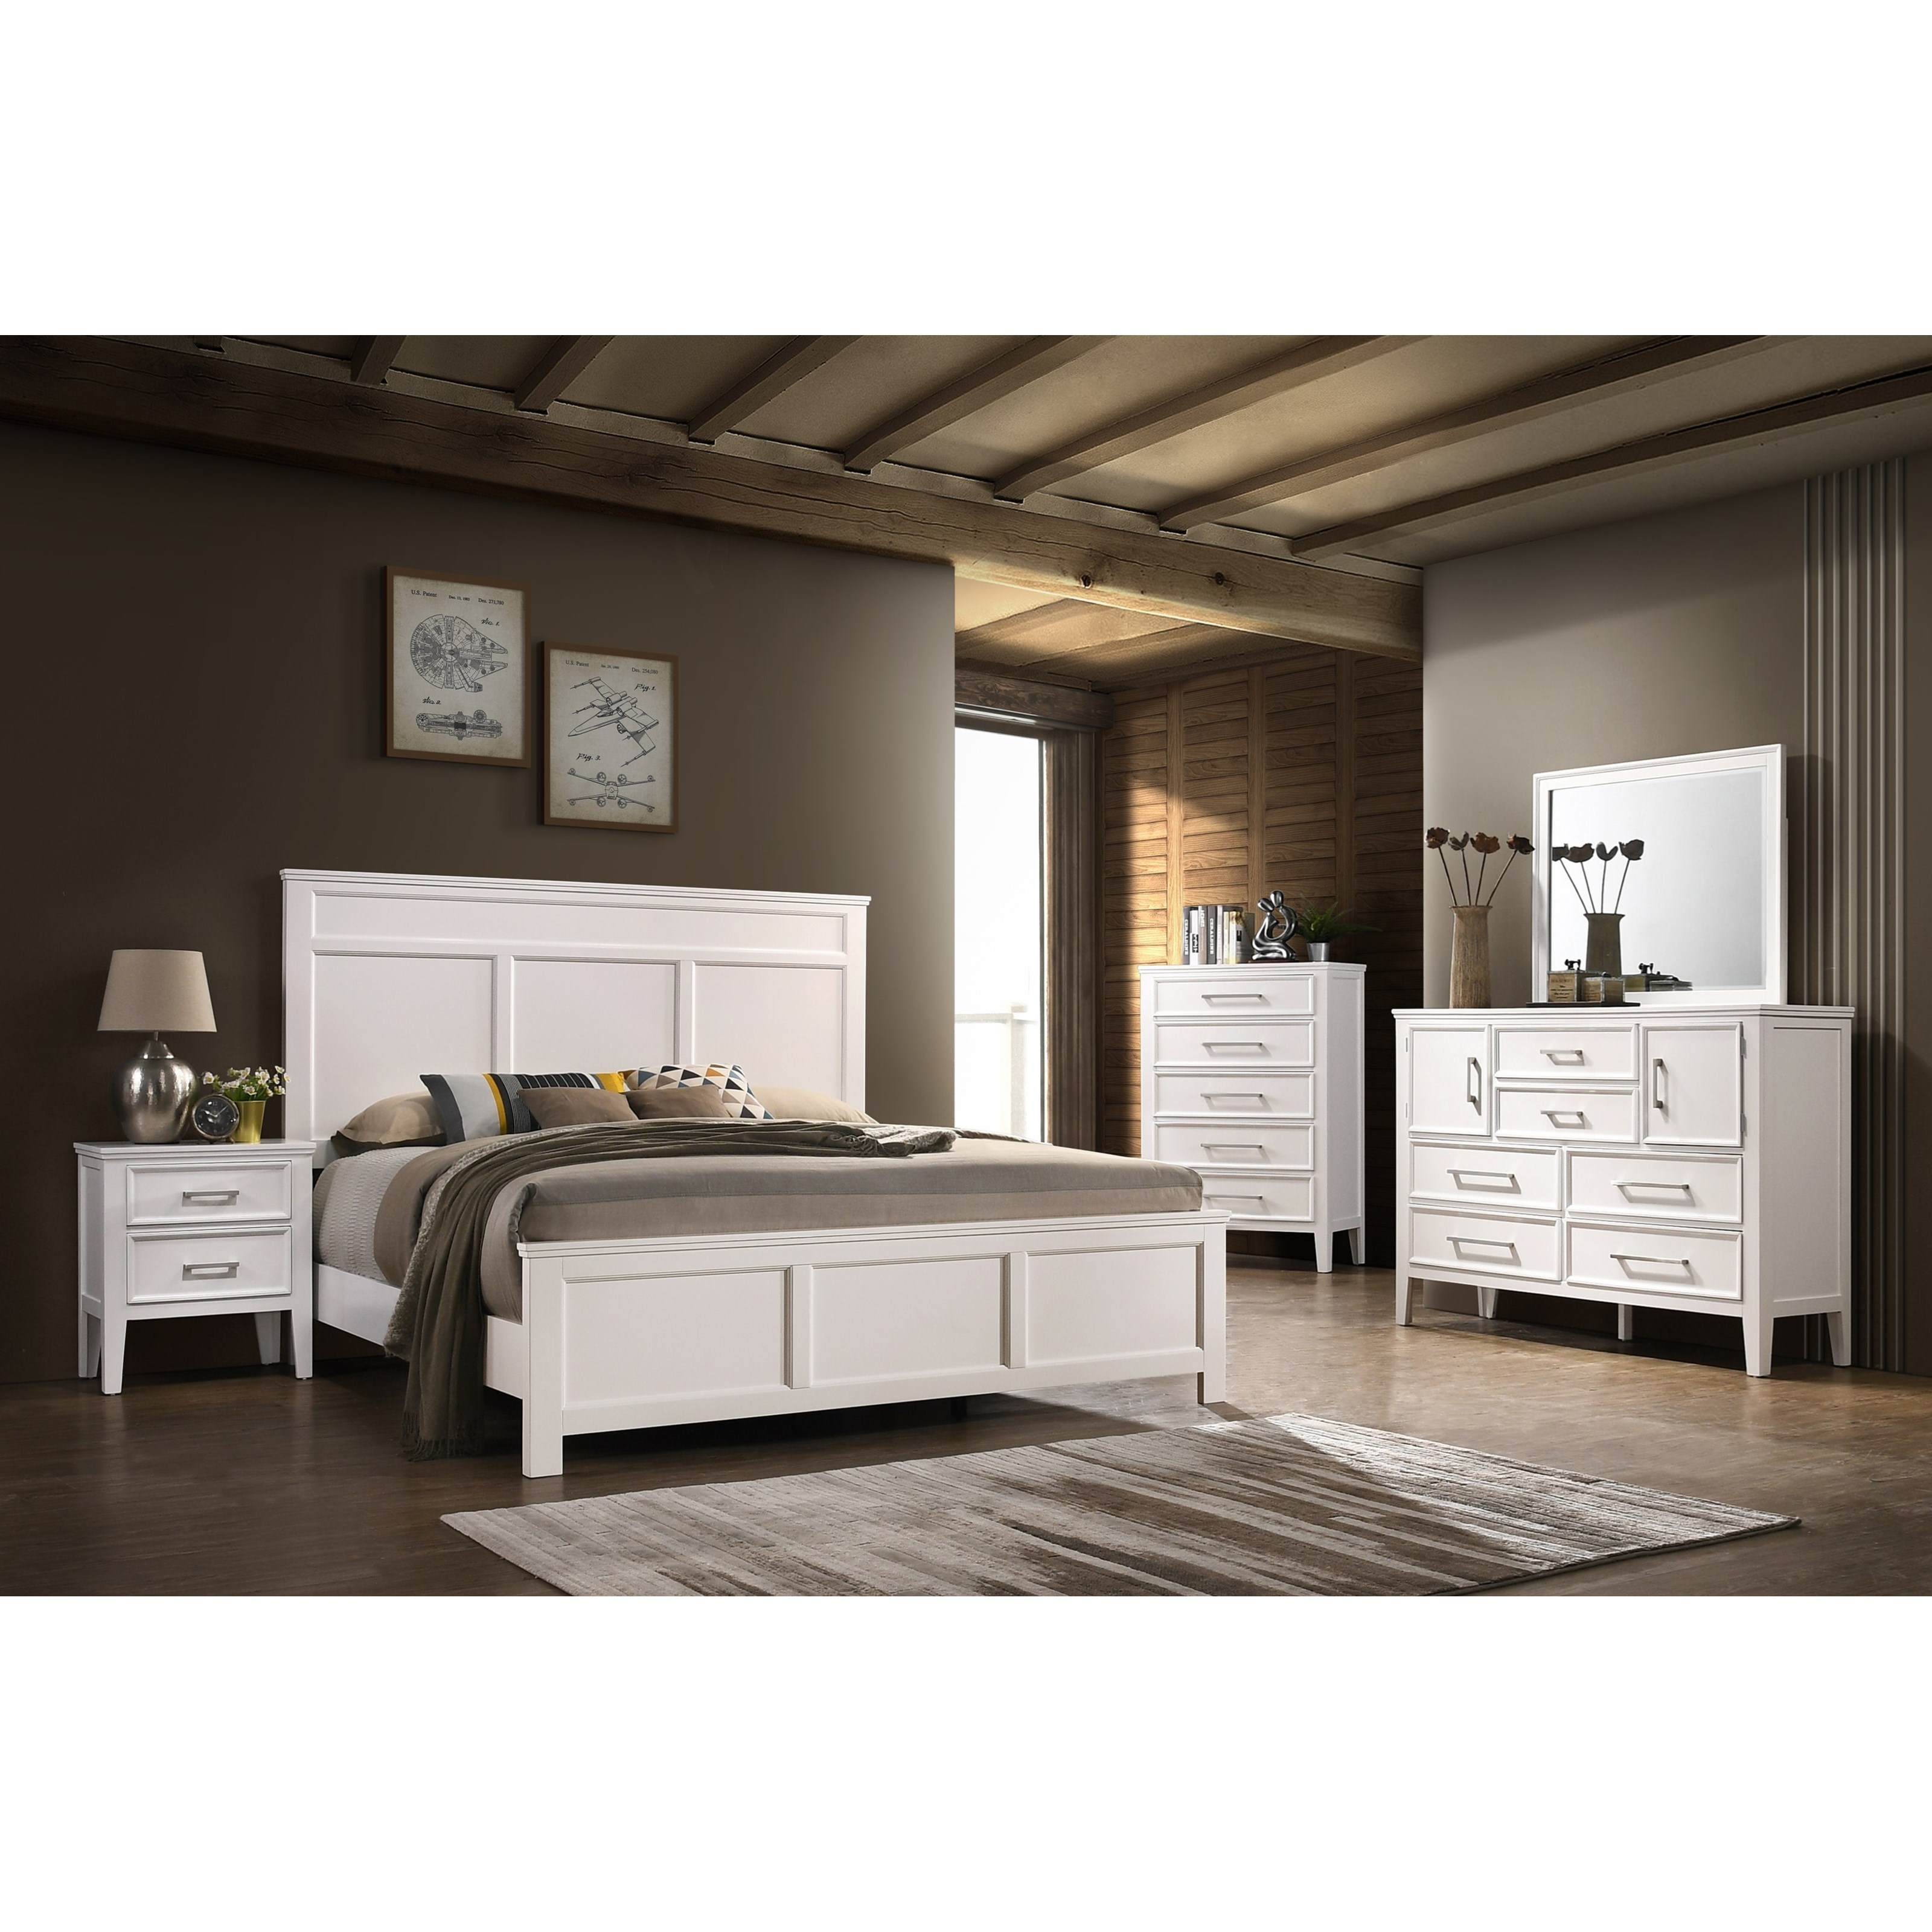 Andover Full Bedroom Group by New Classic at Beds N Stuff